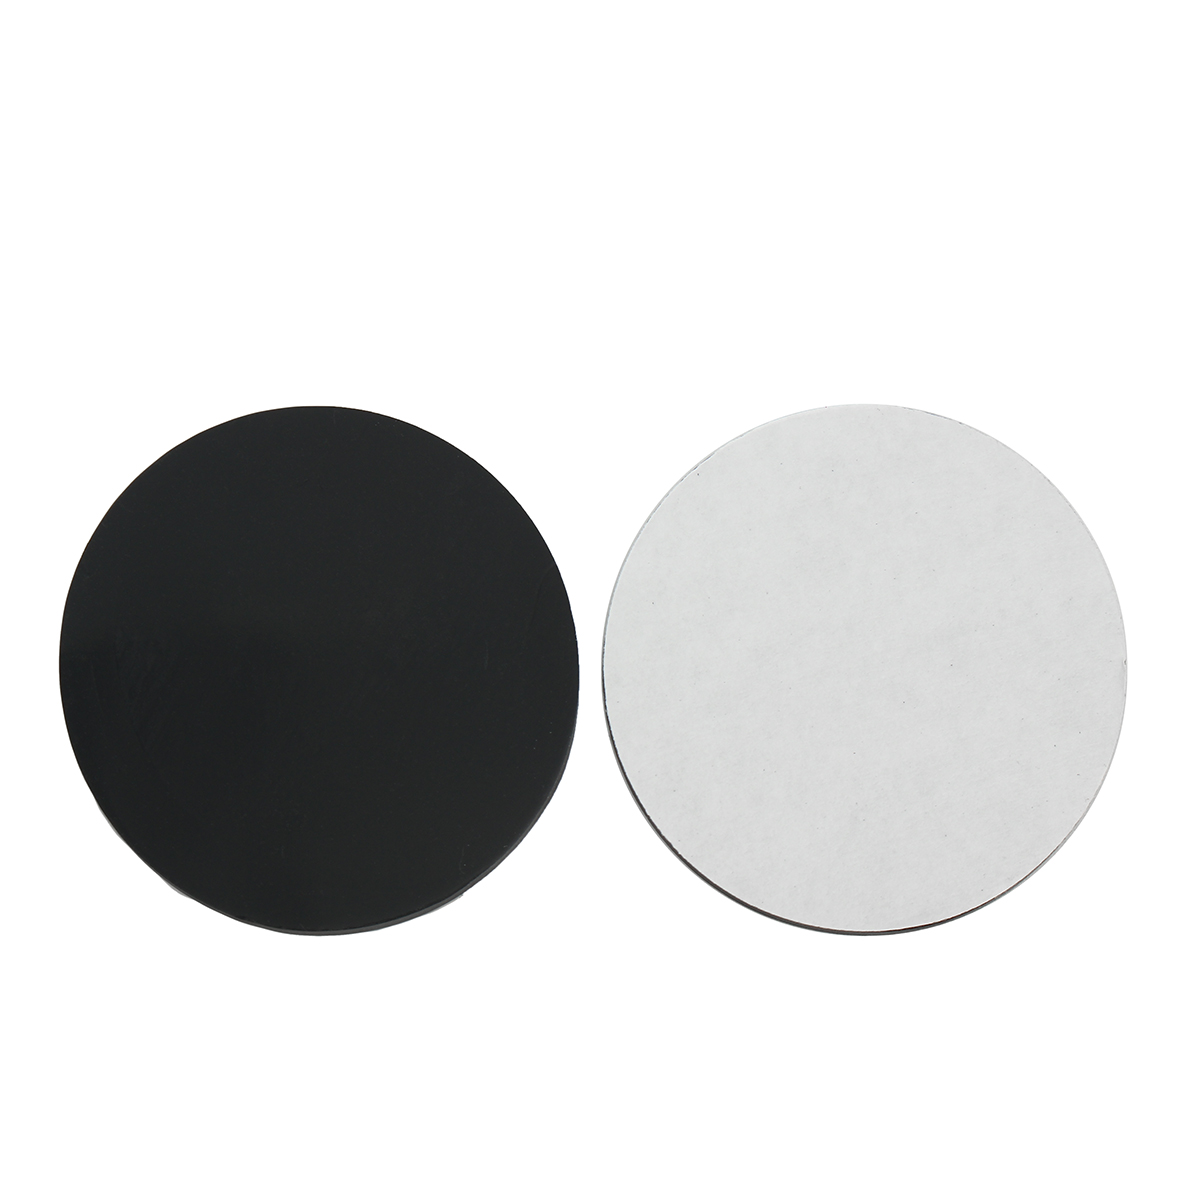 100Pcs 32mm Round Black Silicone Oval Model Bases Support for Wargames Table Games Warhammer 40K